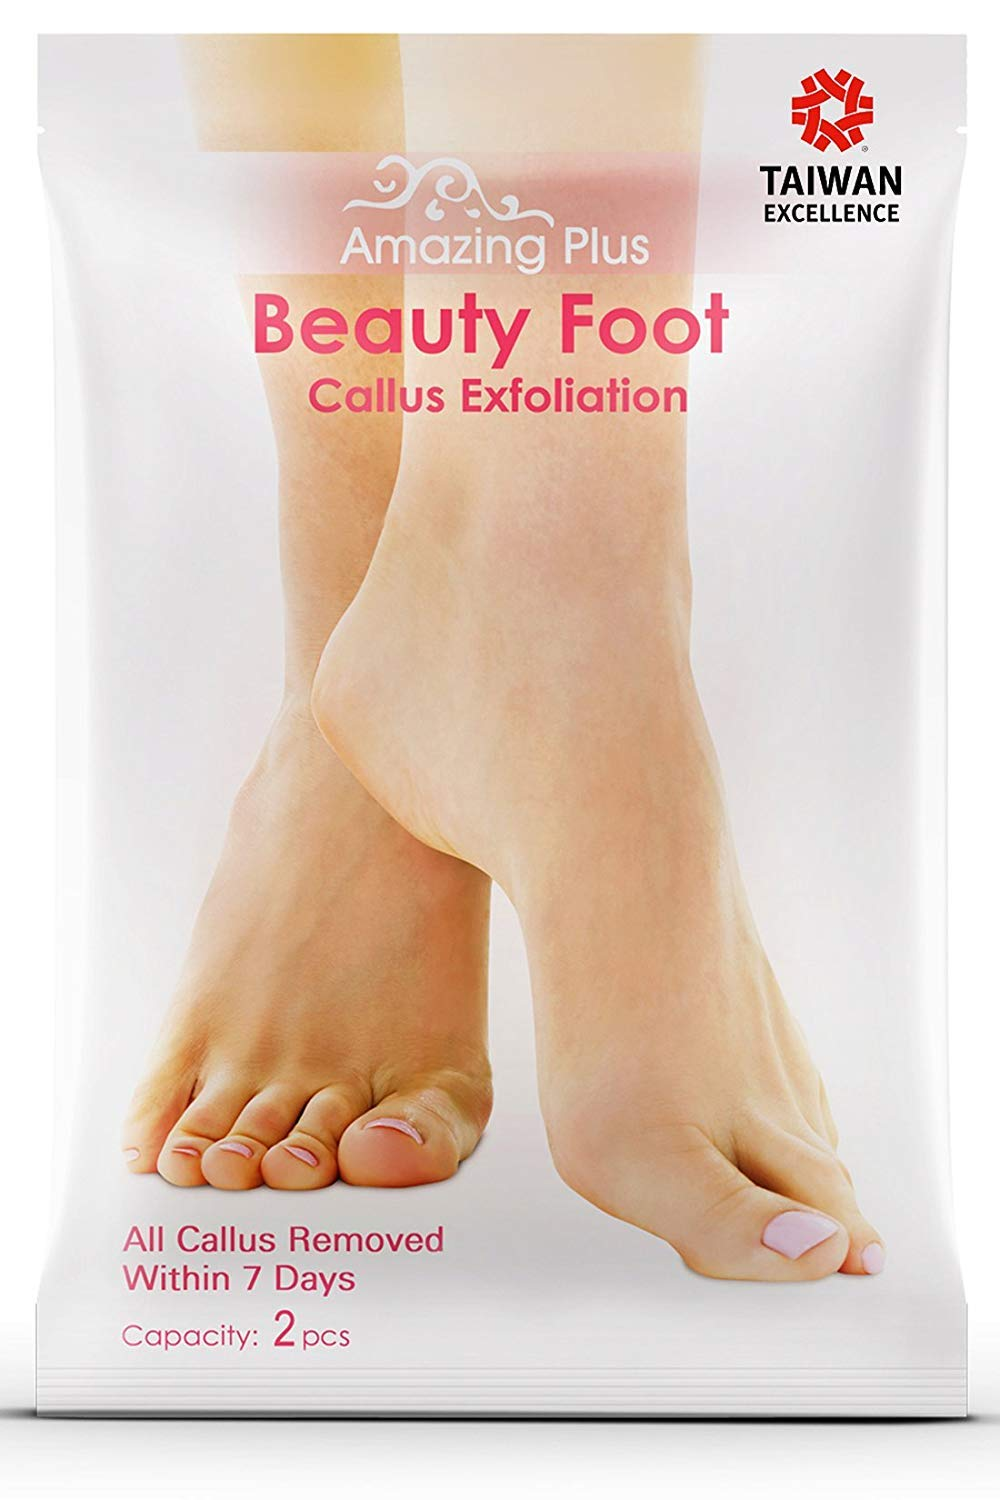 Exfoliating Foot Peel Mask for Smooth and Soft Feet - Peeling Away Rough Dead Skin and Calluses - Natural Peeling Formula for Baby Soft Feet After Single Use